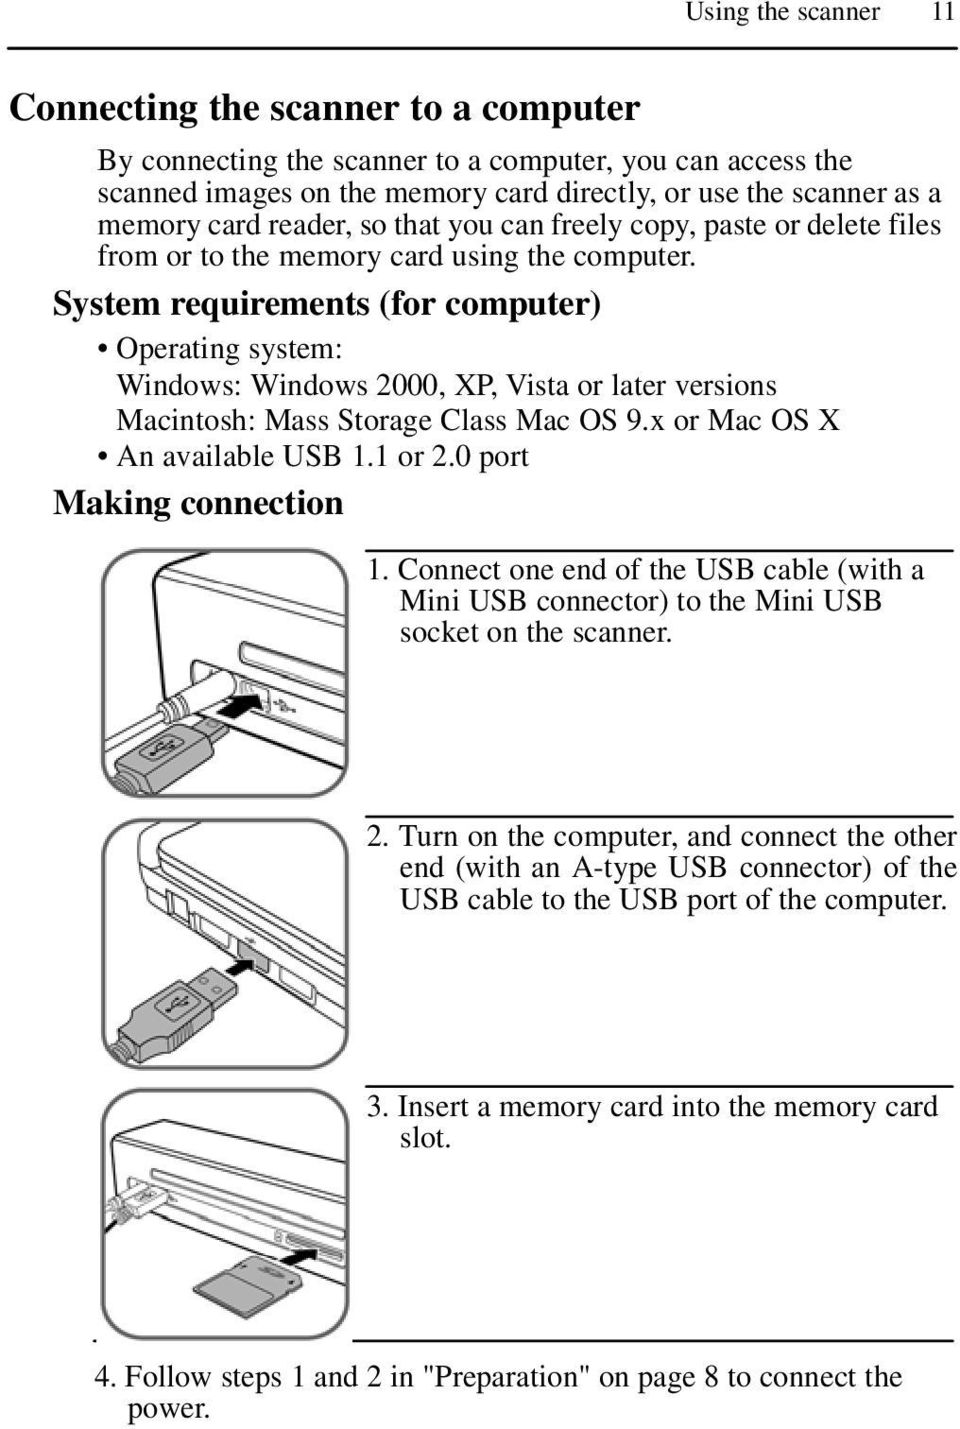 System requirements (for computer) ò Operating system: Windows: Windows 2000, XP, Vista or later versions Macintosh: Mass Storage Class Mac OS 9.x or Mac OS X ò An available USB 1.1 or 2.